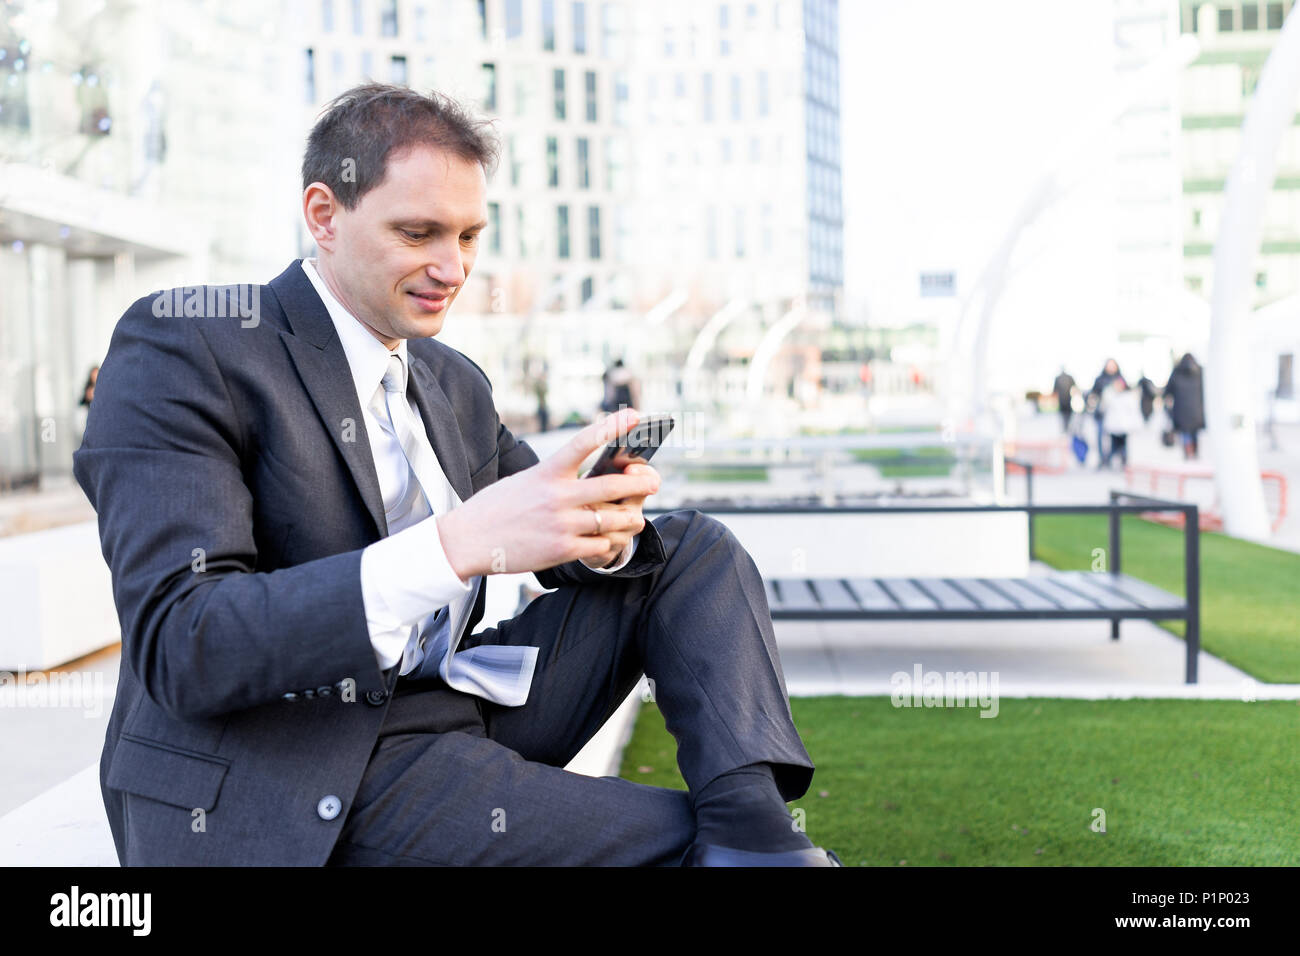 Young businessman smiling sitting on bench in park, using holding smartphone phone mobile cellphone smiling looking down texting in suit and tie, chee - Stock Image